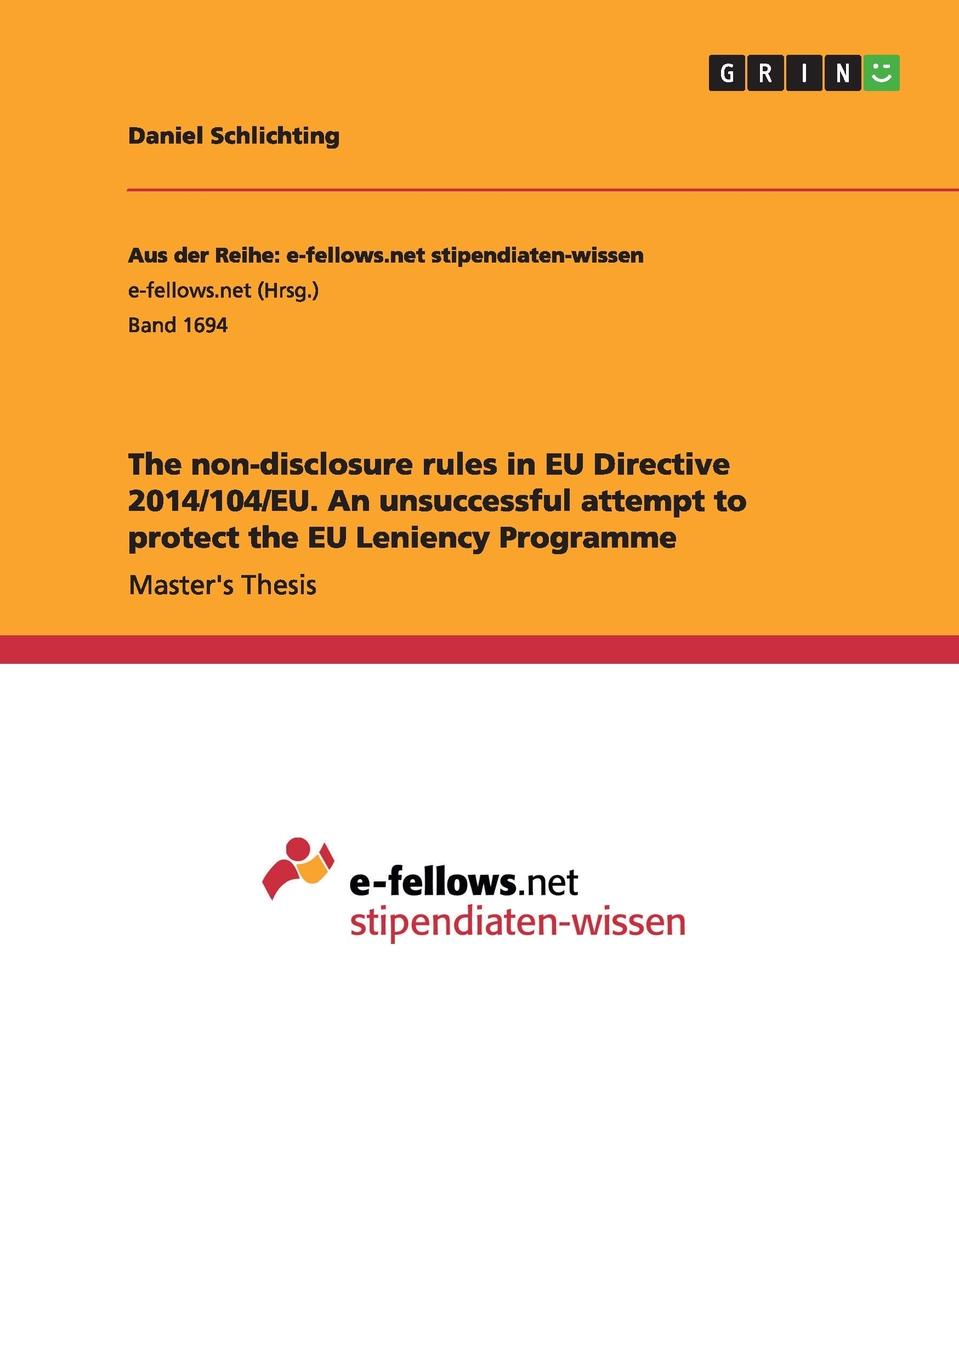 Daniel Schlichting The non-disclosure rules in EU Directive 2014/104/EU. An unsuccessful attempt to protect the EU Leniency Programme matthias strohmayer posting of workers within the european union the enforcement directive 2014 67 eu and shortfalls of existing legislation